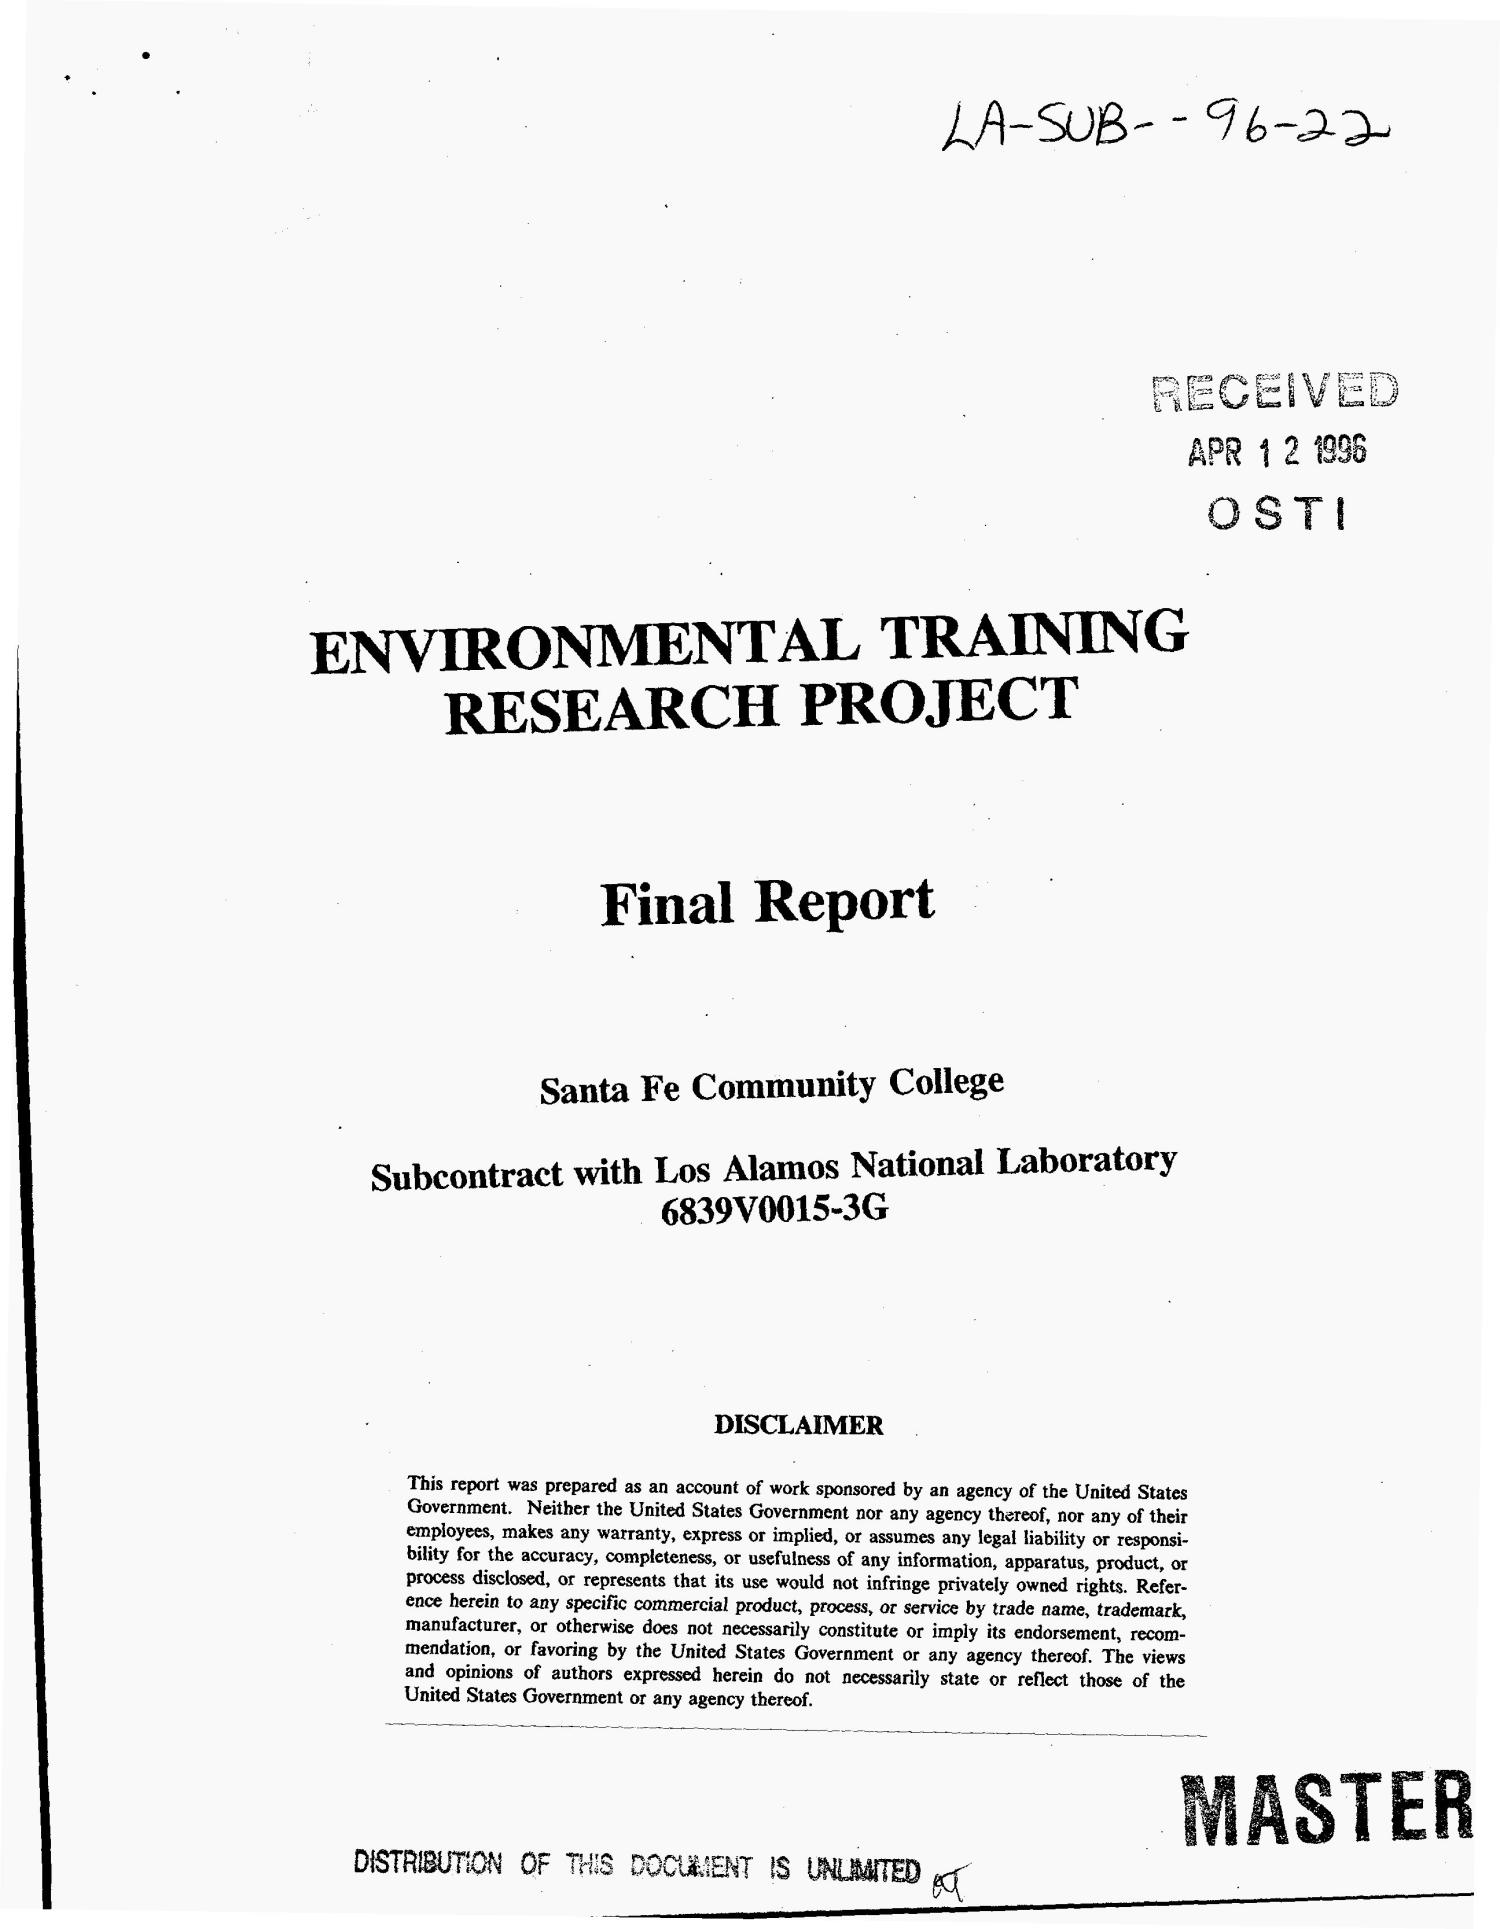 Environmental training research project. Final report                                                                                                      [Sequence #]: 1 of 8